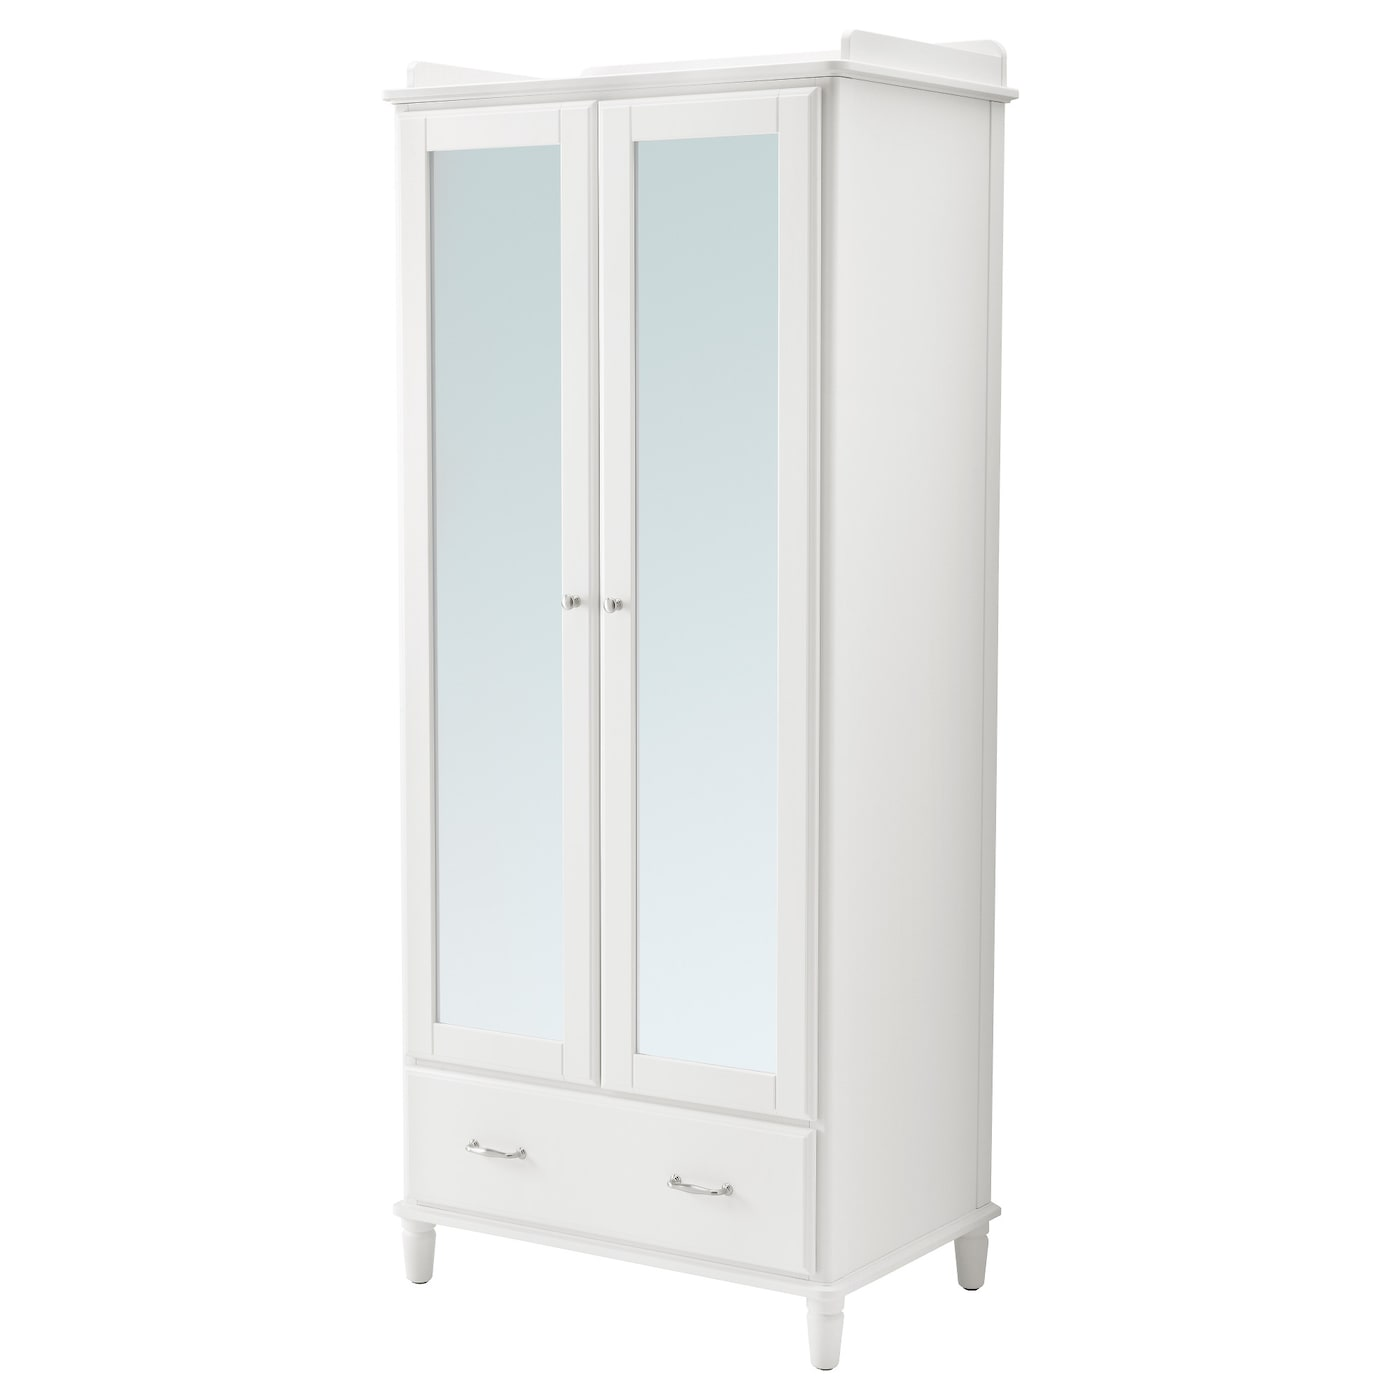 Wardrobes ikea for Armadio hemnes ikea